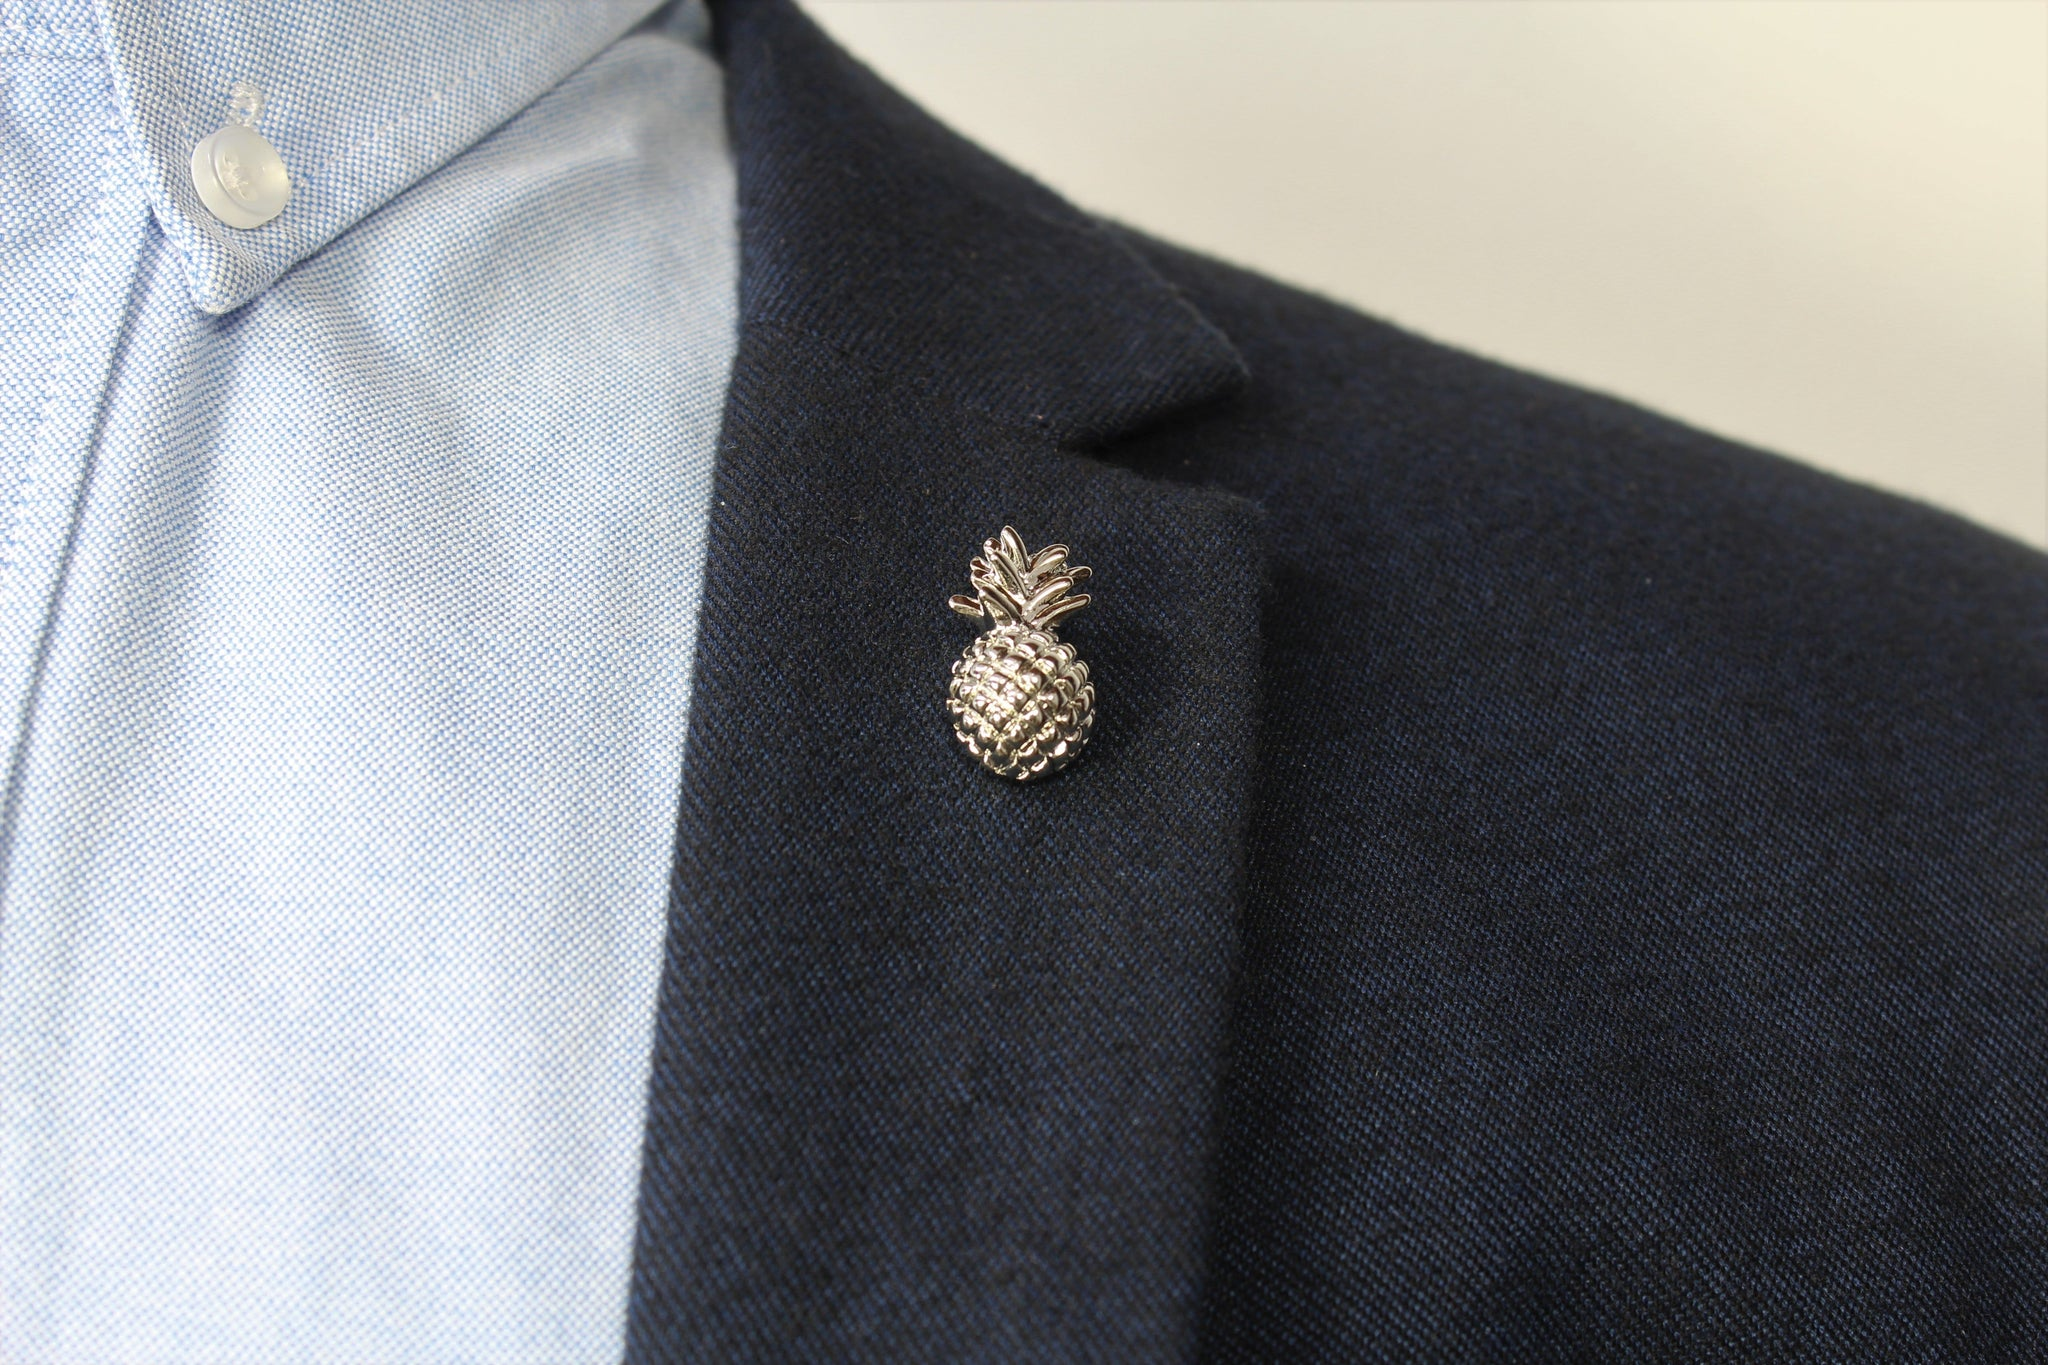 Pineapple Lapel Pin on blazer - Stolen Riches